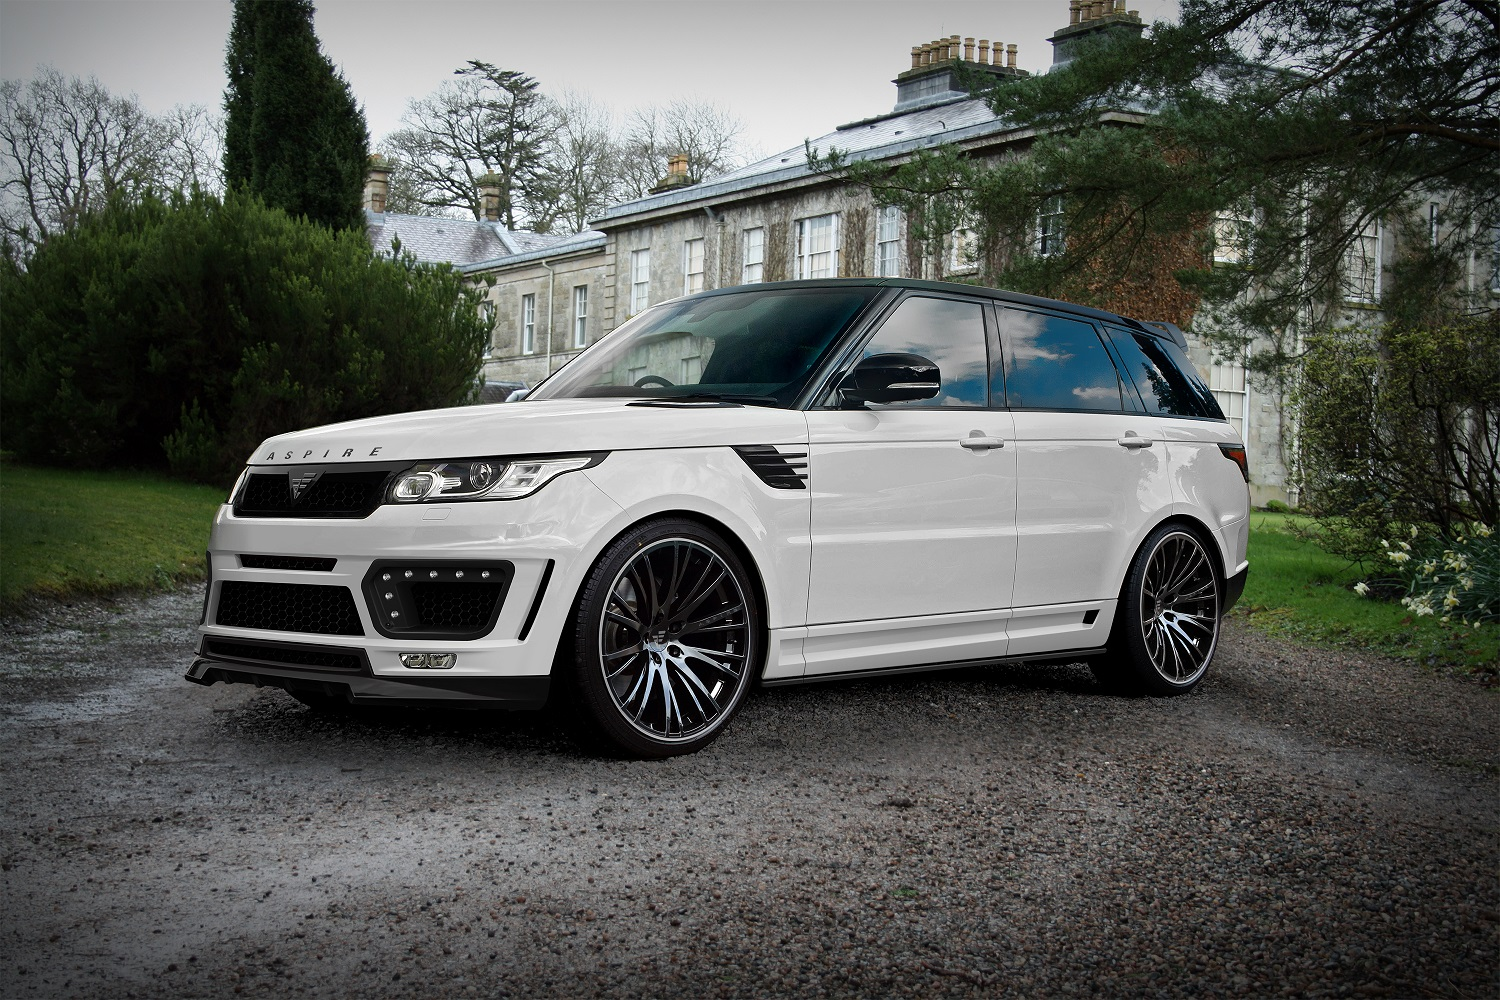 official range rover sport by aspire design gtspirit. Black Bedroom Furniture Sets. Home Design Ideas